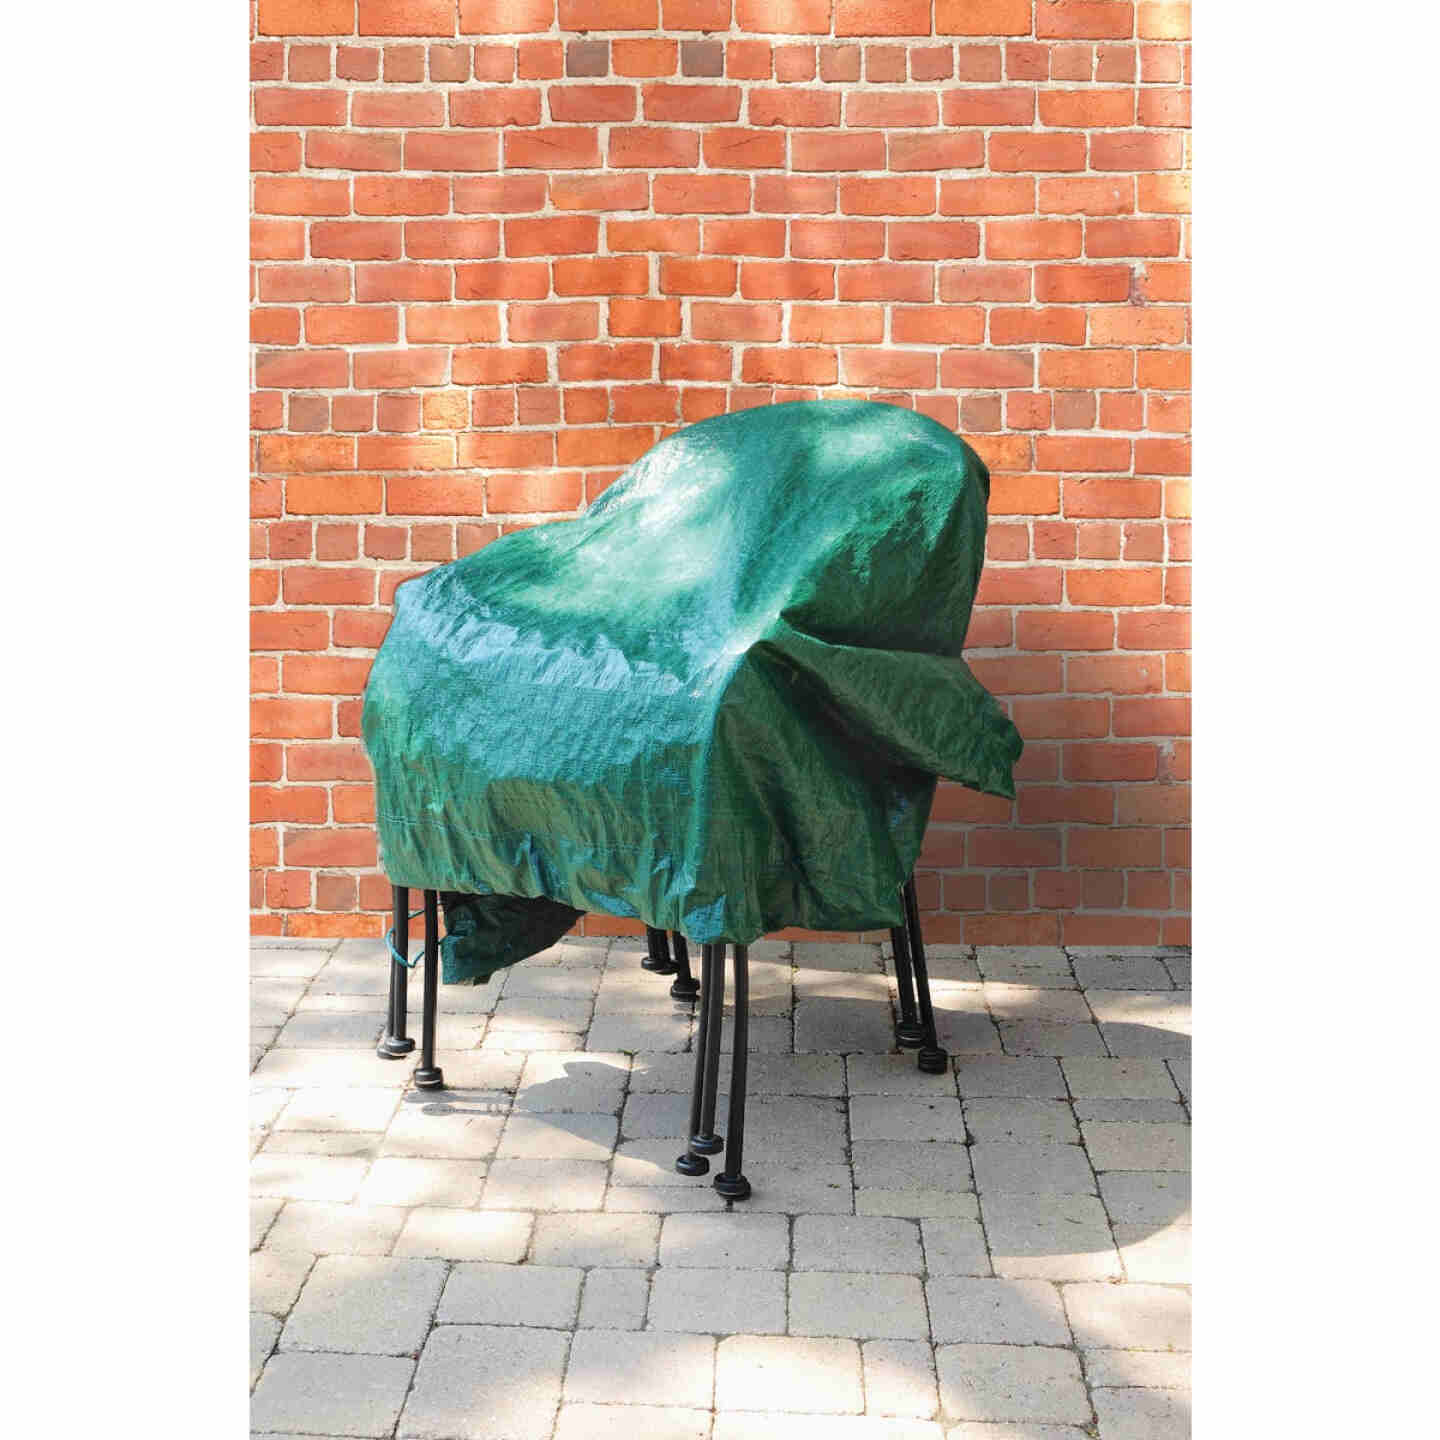 Do it Best  6 Ft. x 6 Ft. Poly Fabric Green Lawn Cleanup Tarp Image 6